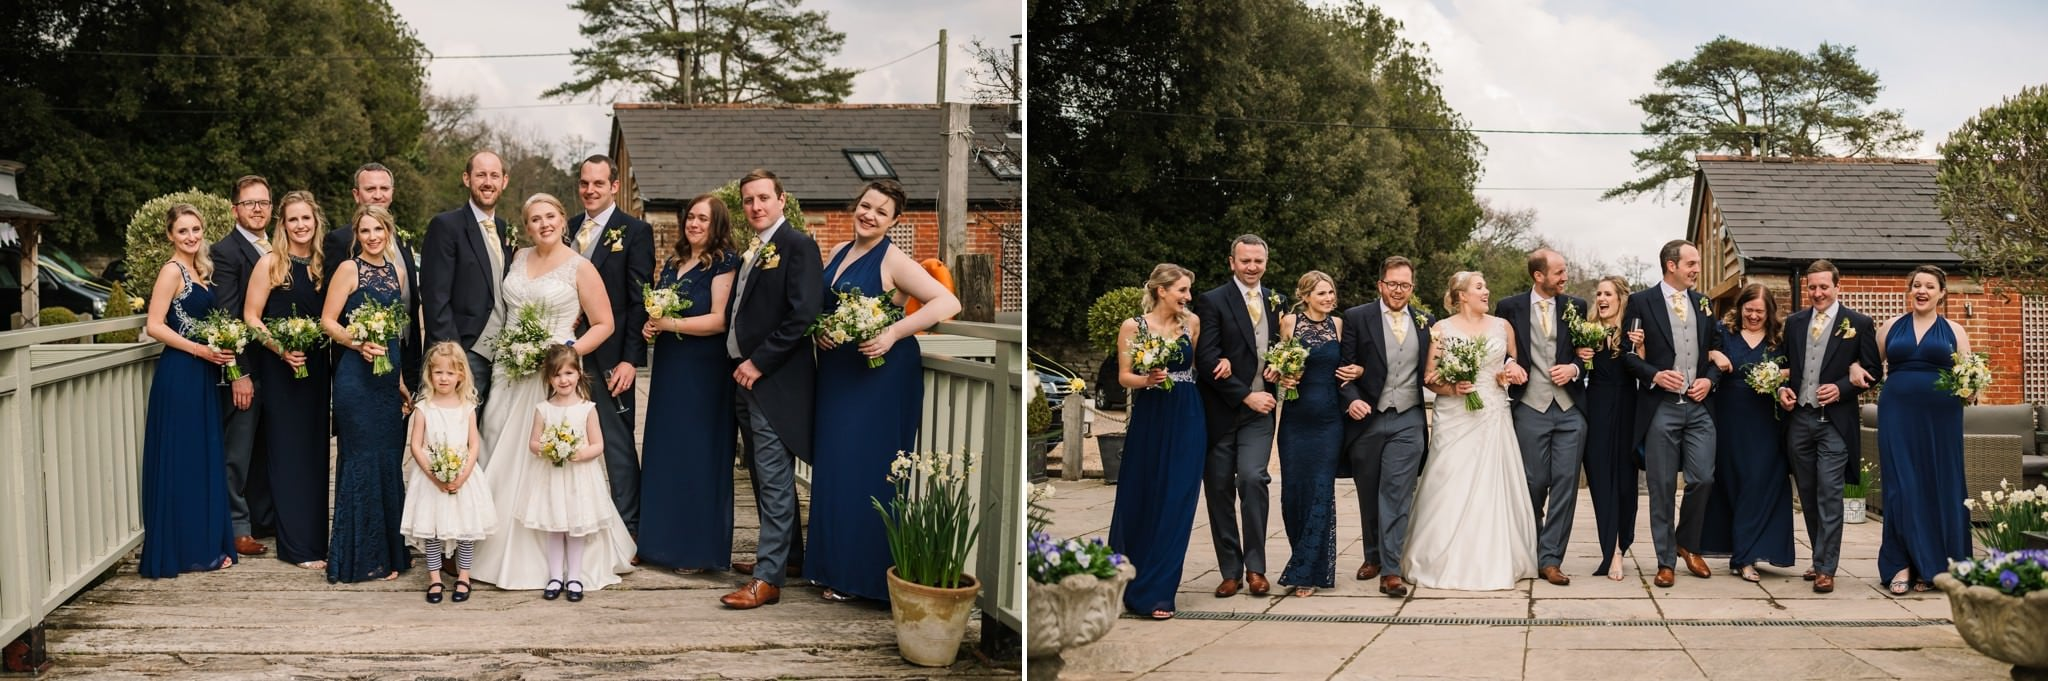 Group photographs at Sopley Mill wedding